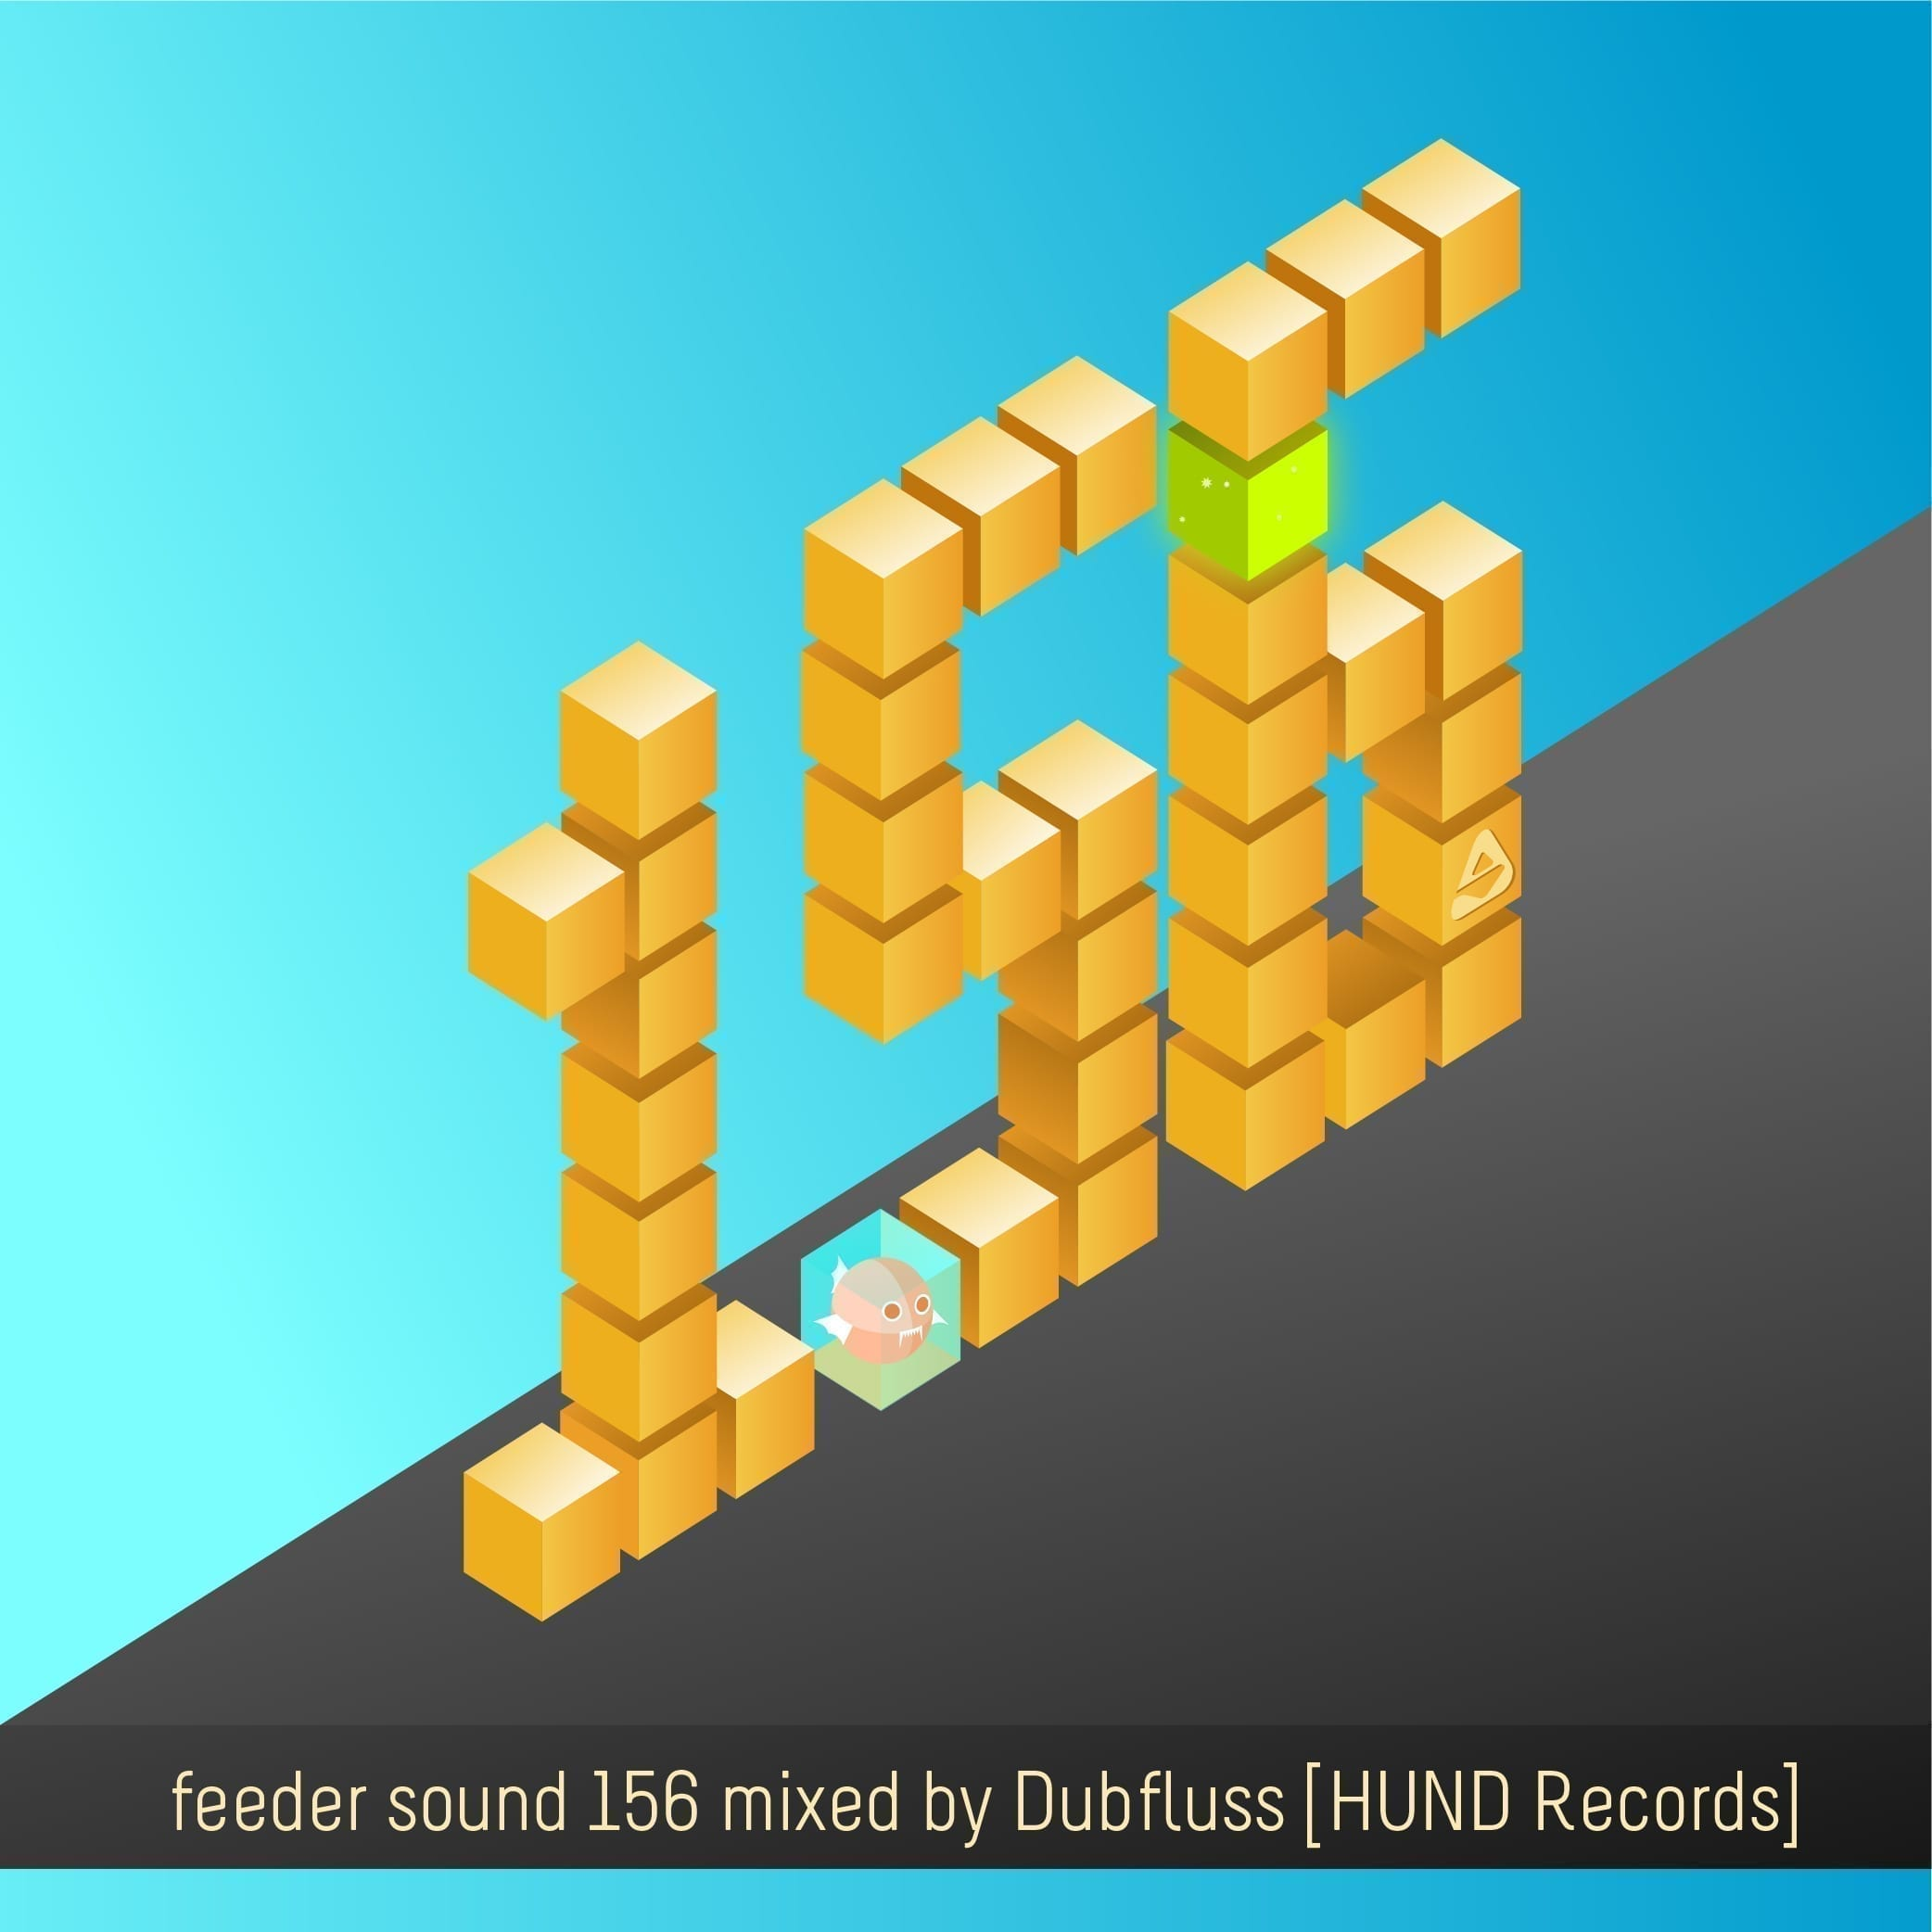 feeder sound 156 mixed by Dubfluss [HUND Records]